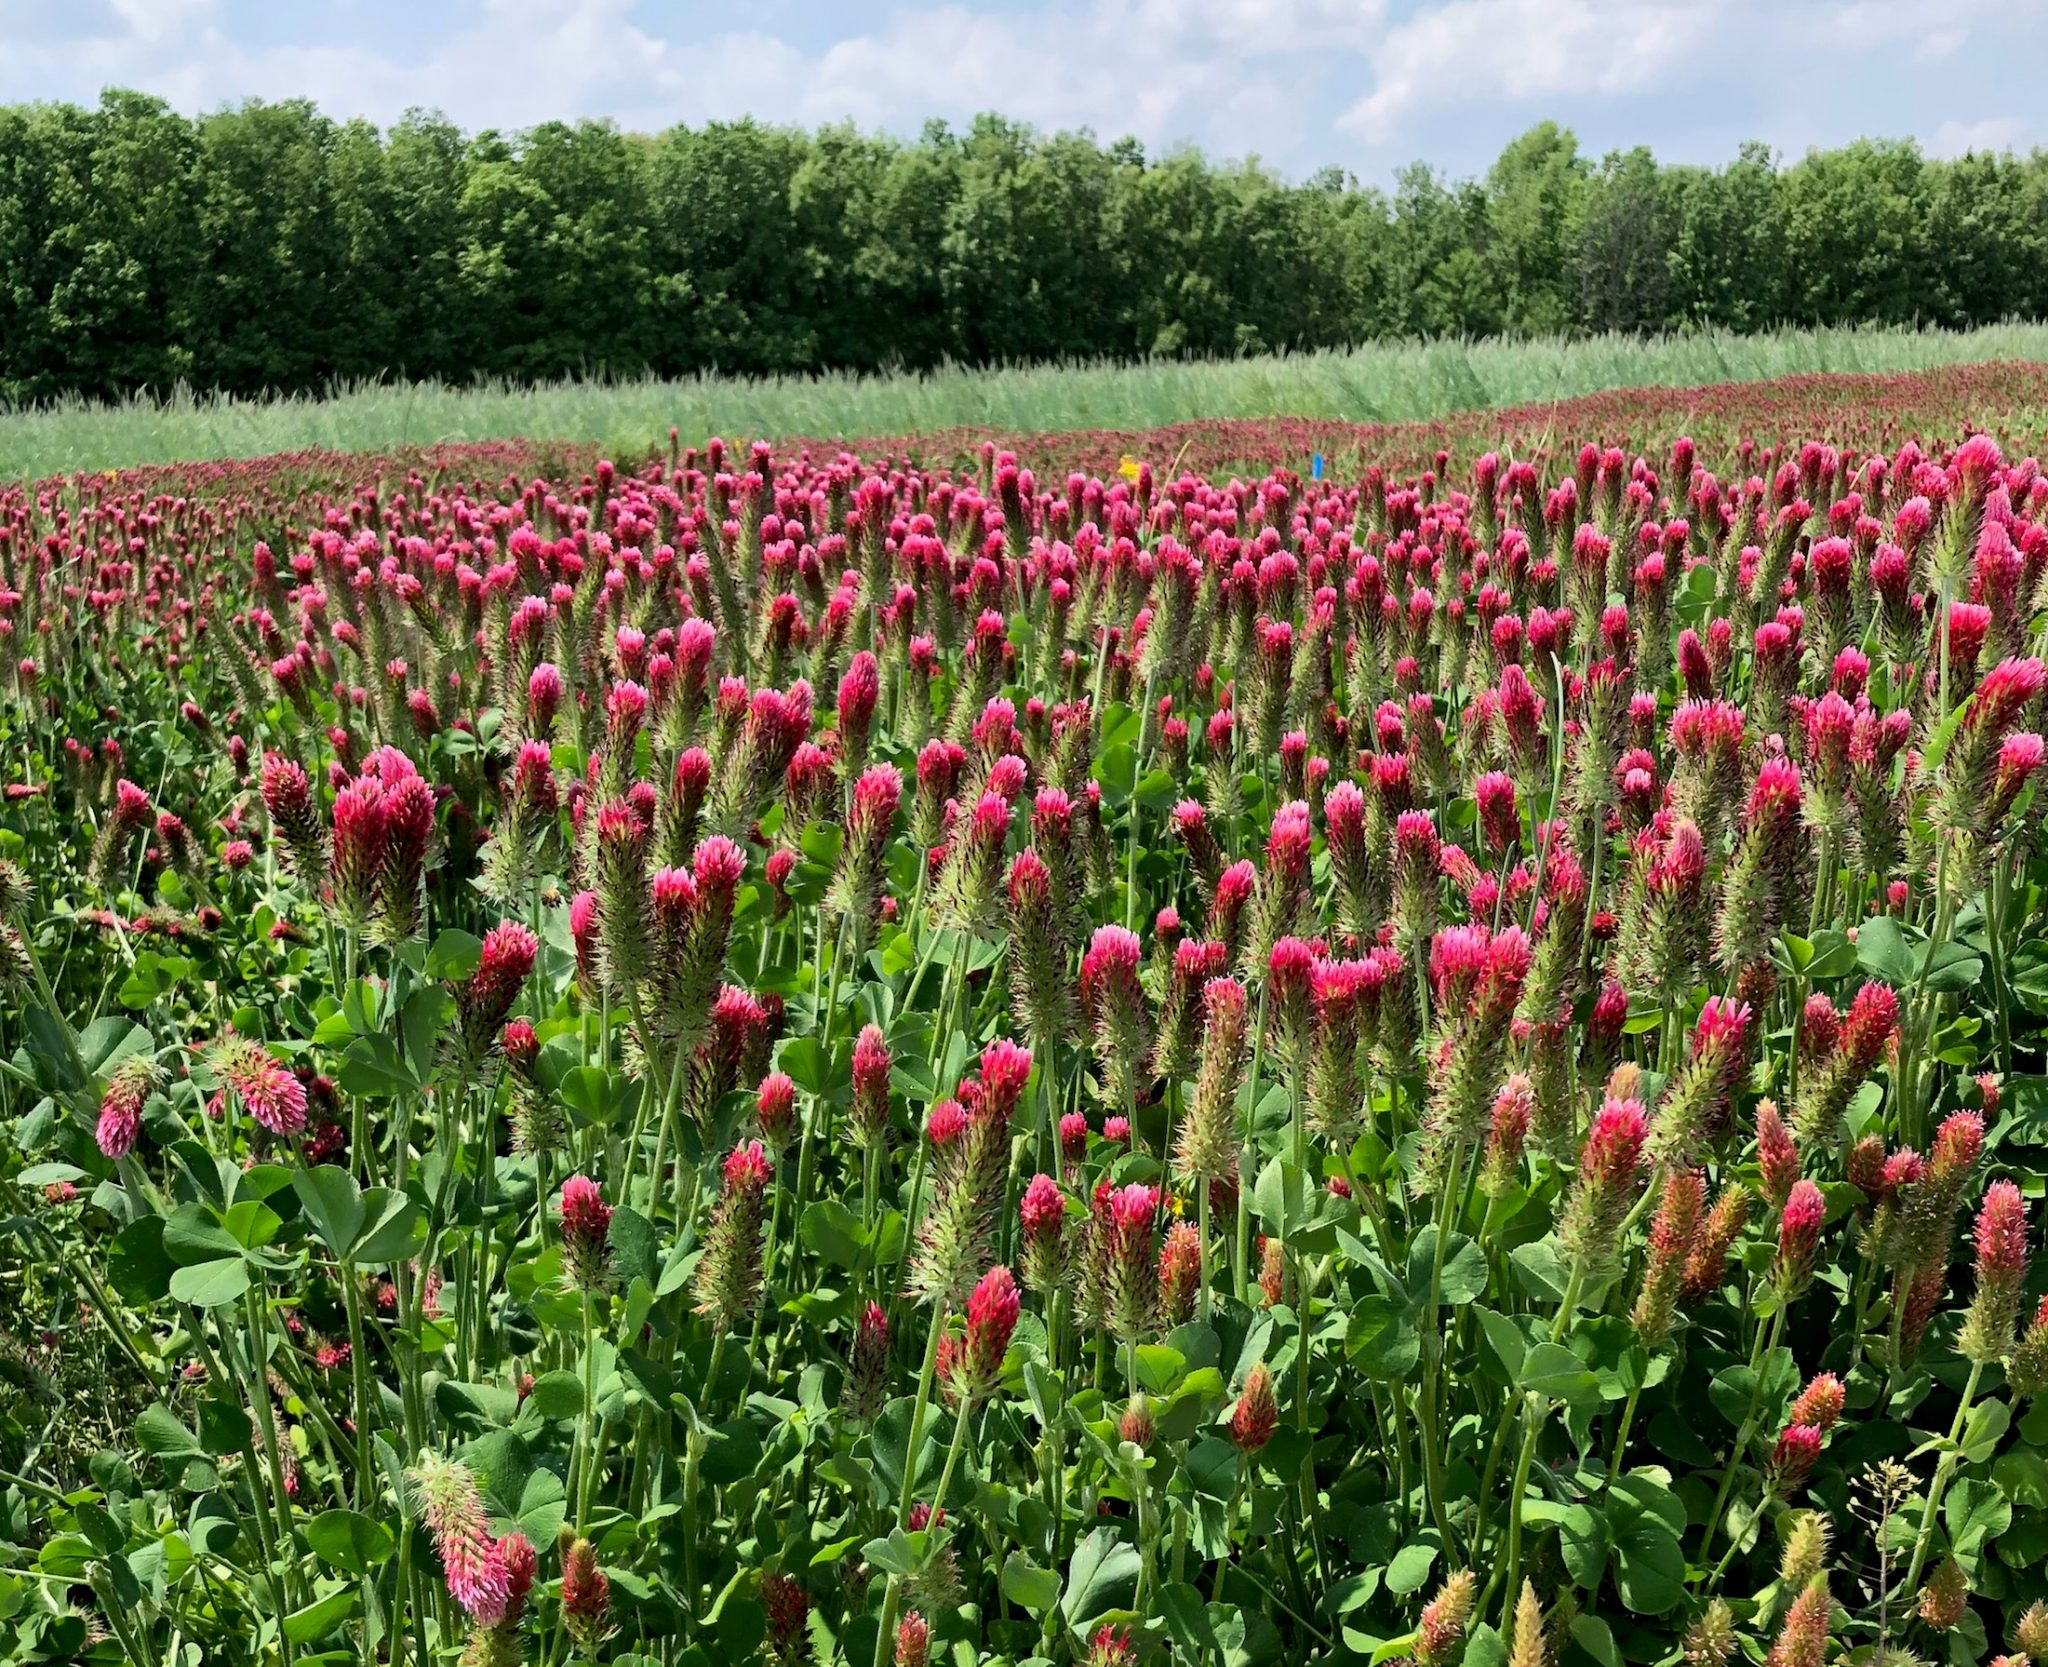 Red clover stand in 2019 cover crop trials. (Photo Credit: Connor Hodgskiss)